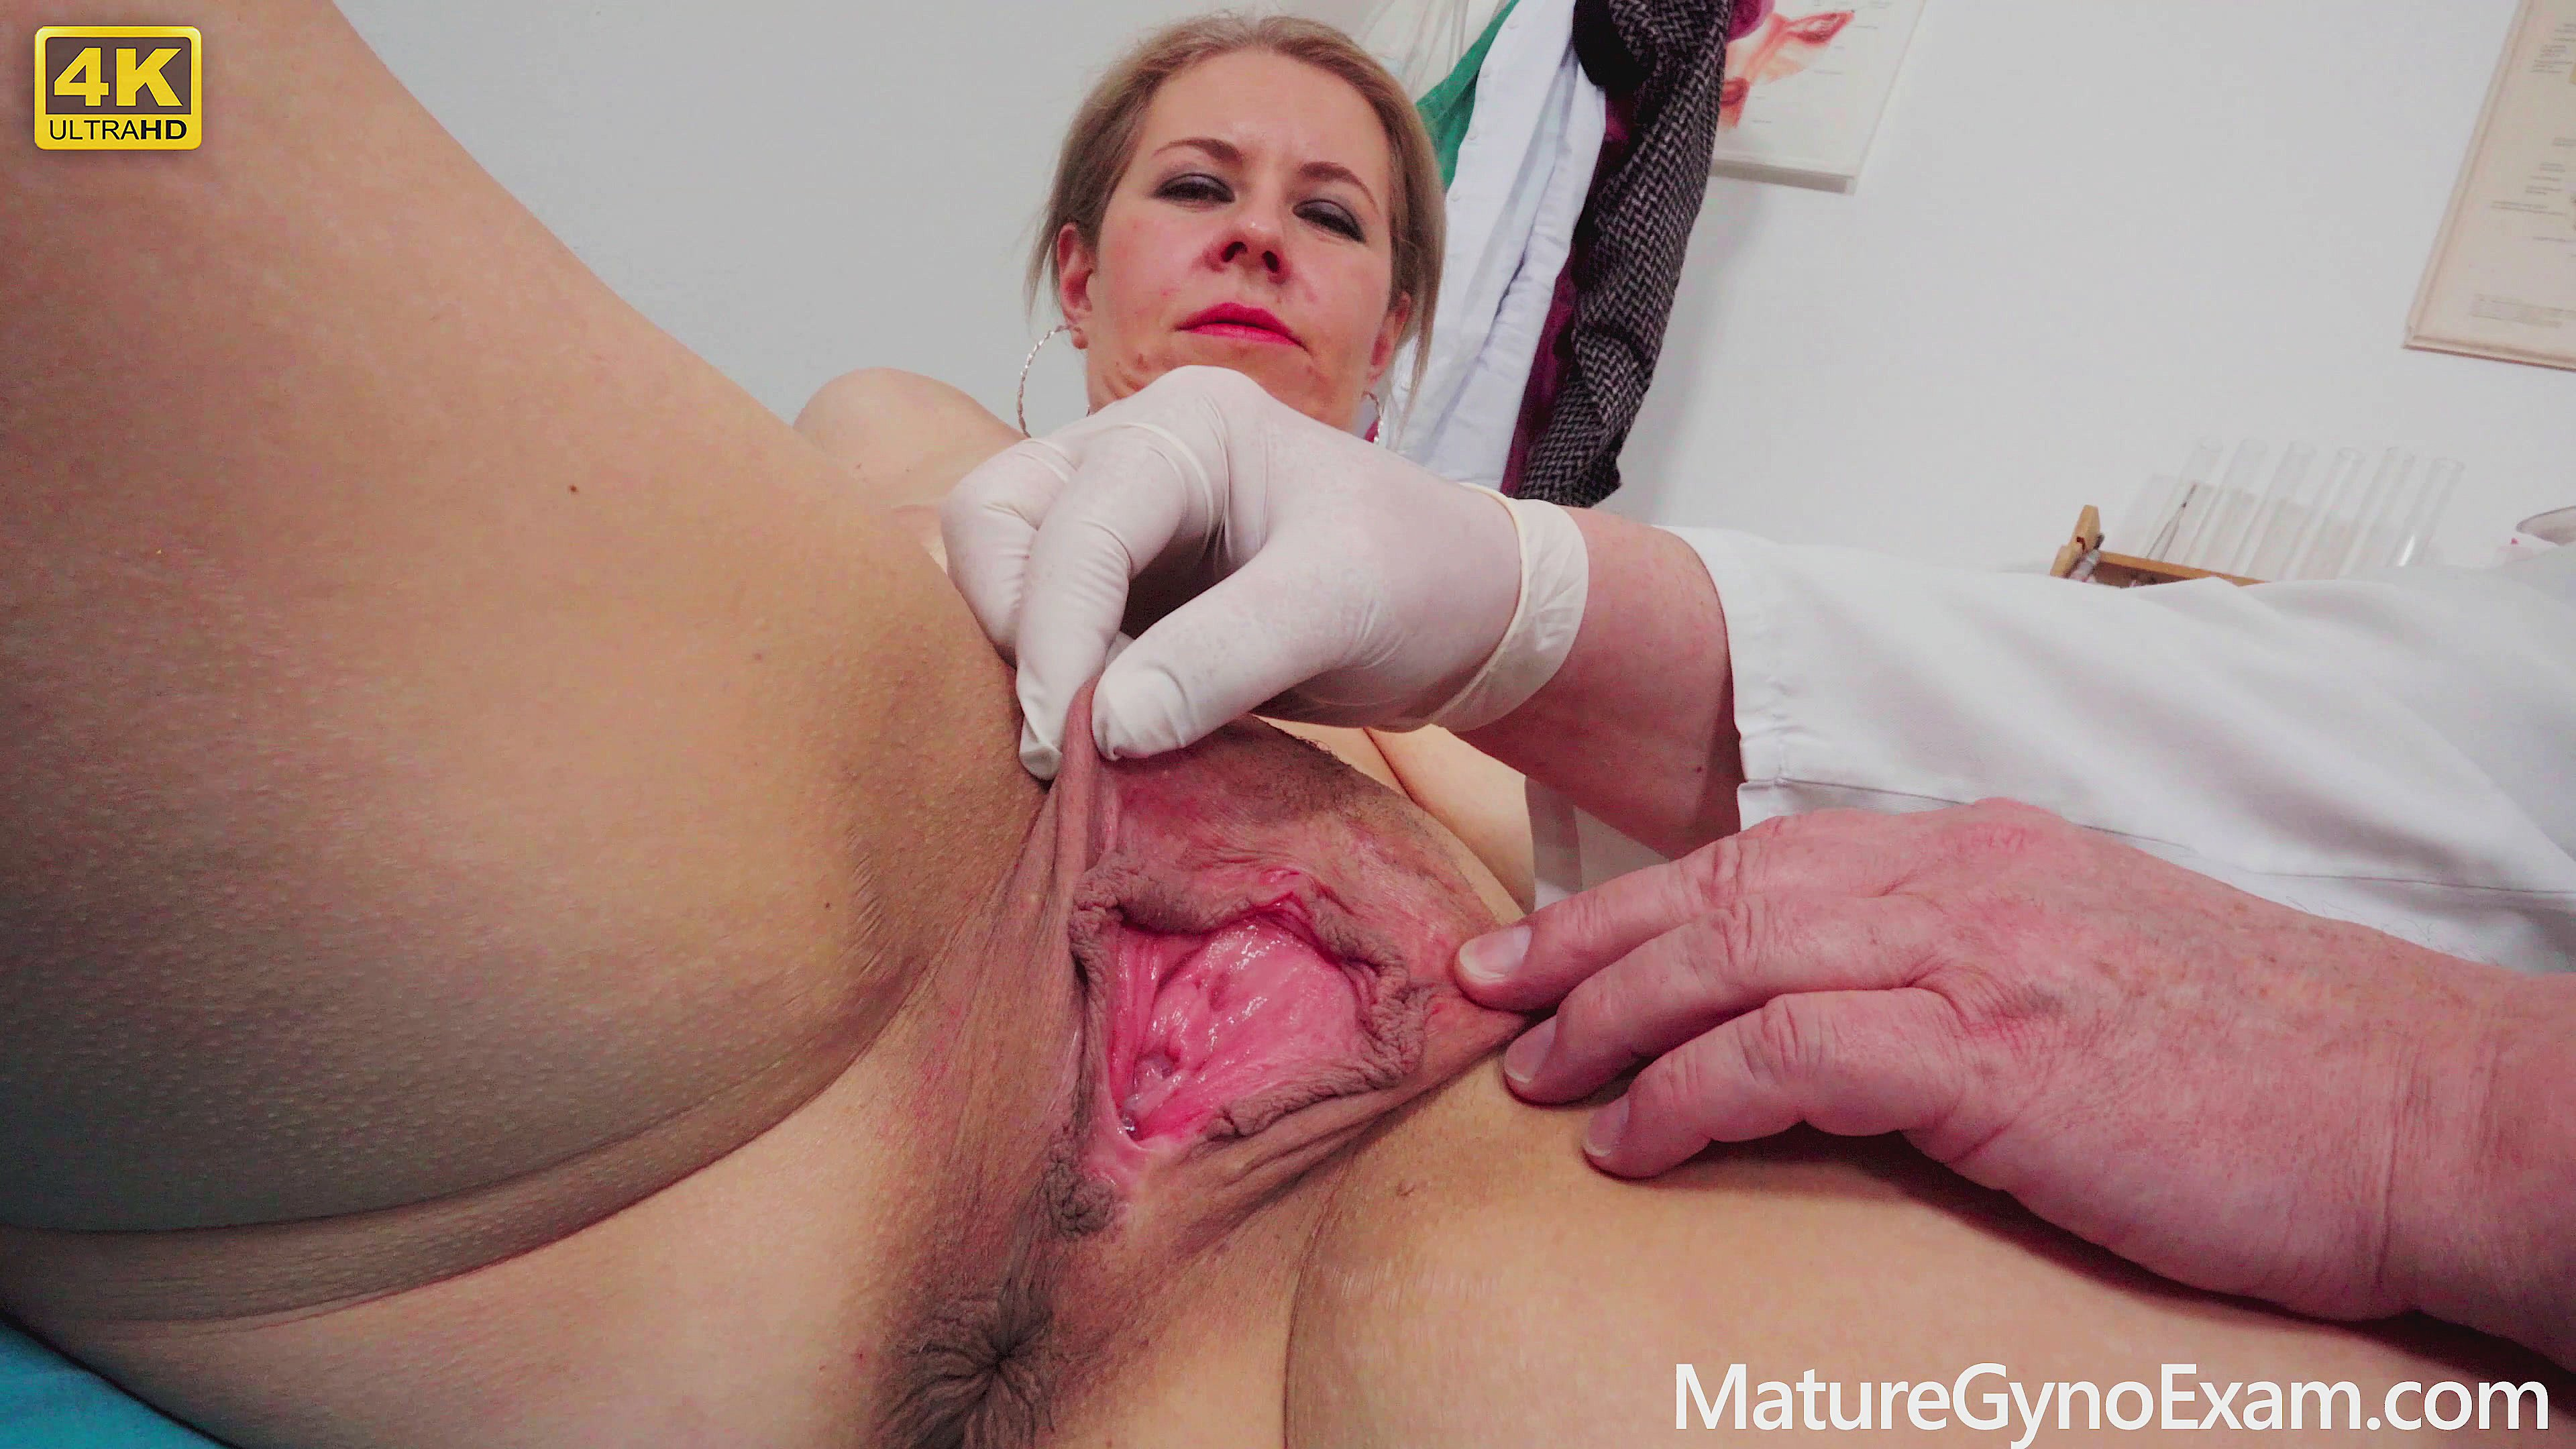 Pussy Inspection